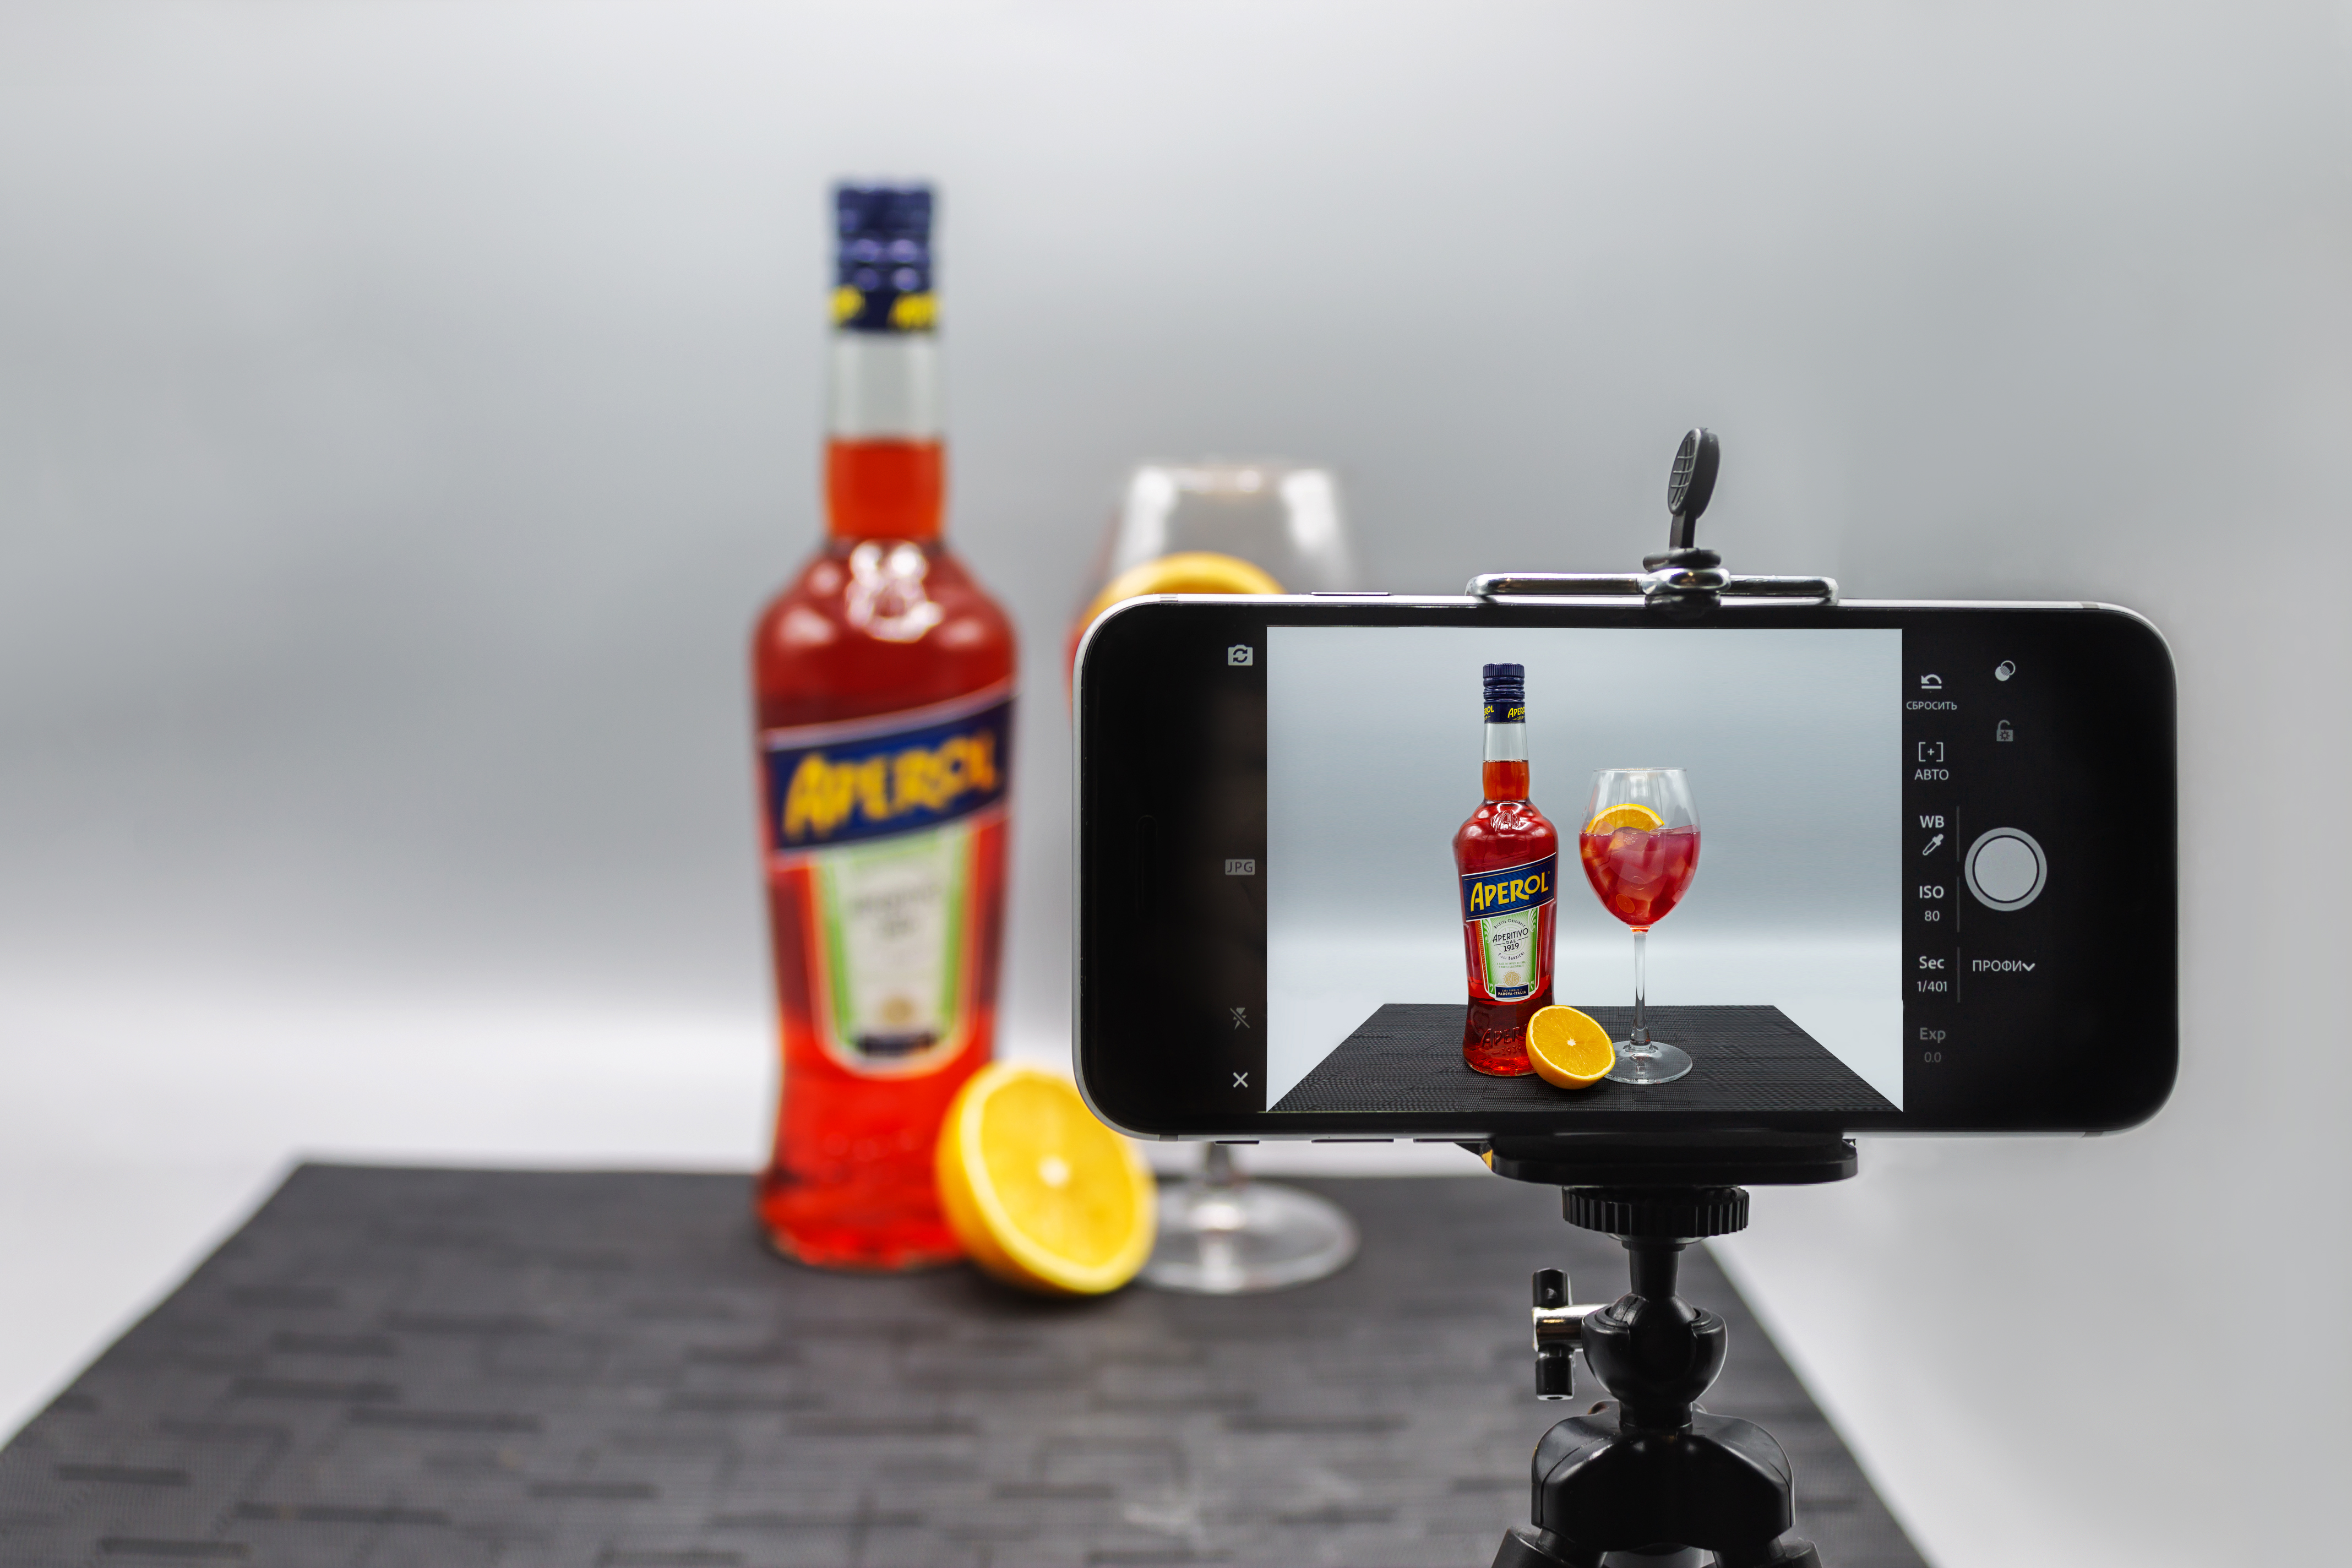 Iphone Product Photography Guide For Beginning Photographers And Sellers